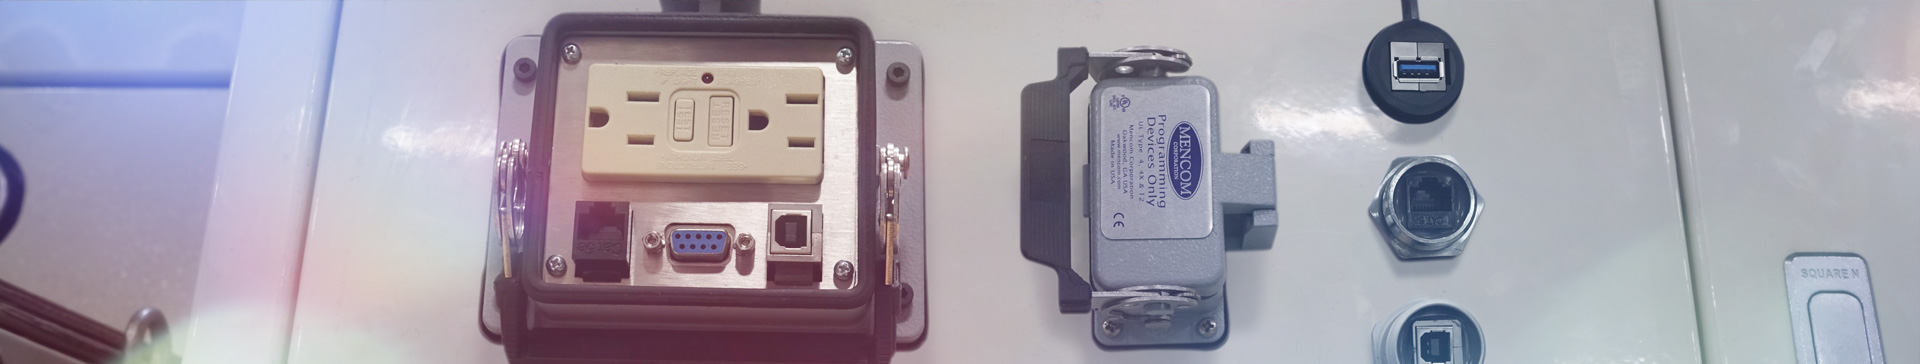 panel interface connectors